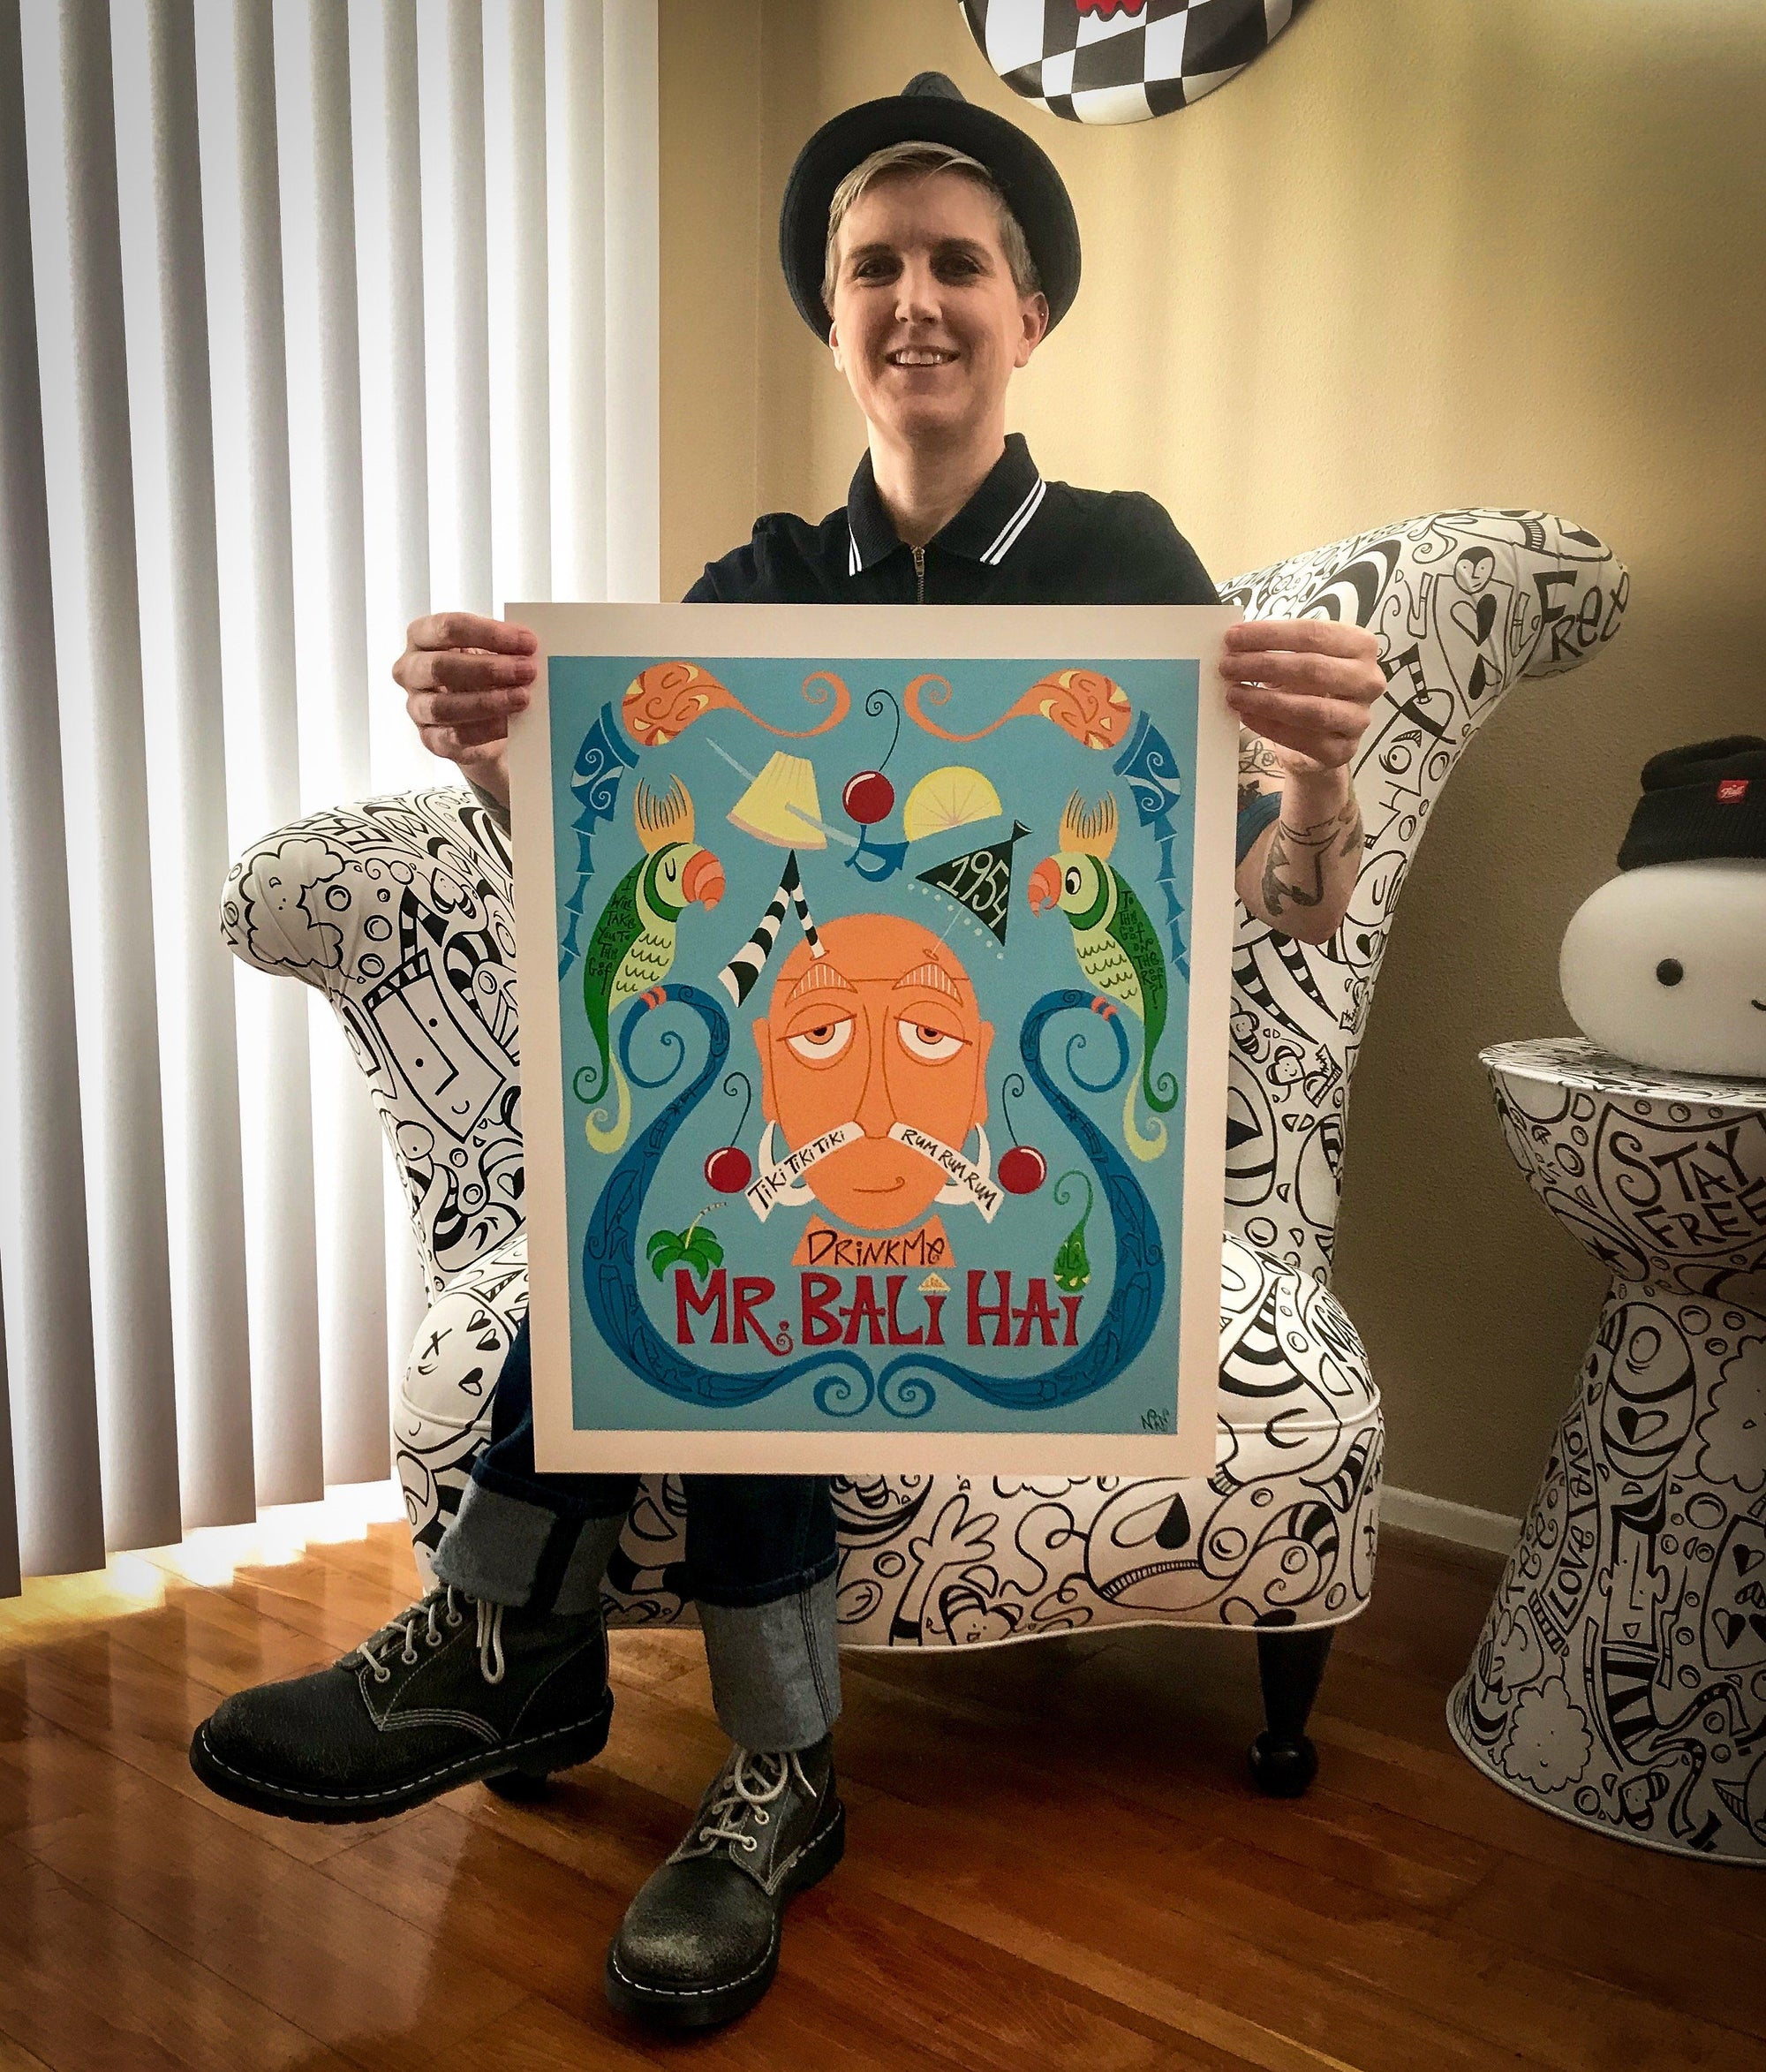 Official Mr. Bali Hai 60th Anniversary - Artist Proof Print | Fine Art and Limited Edition Prints | The Art Of Nan Coffey